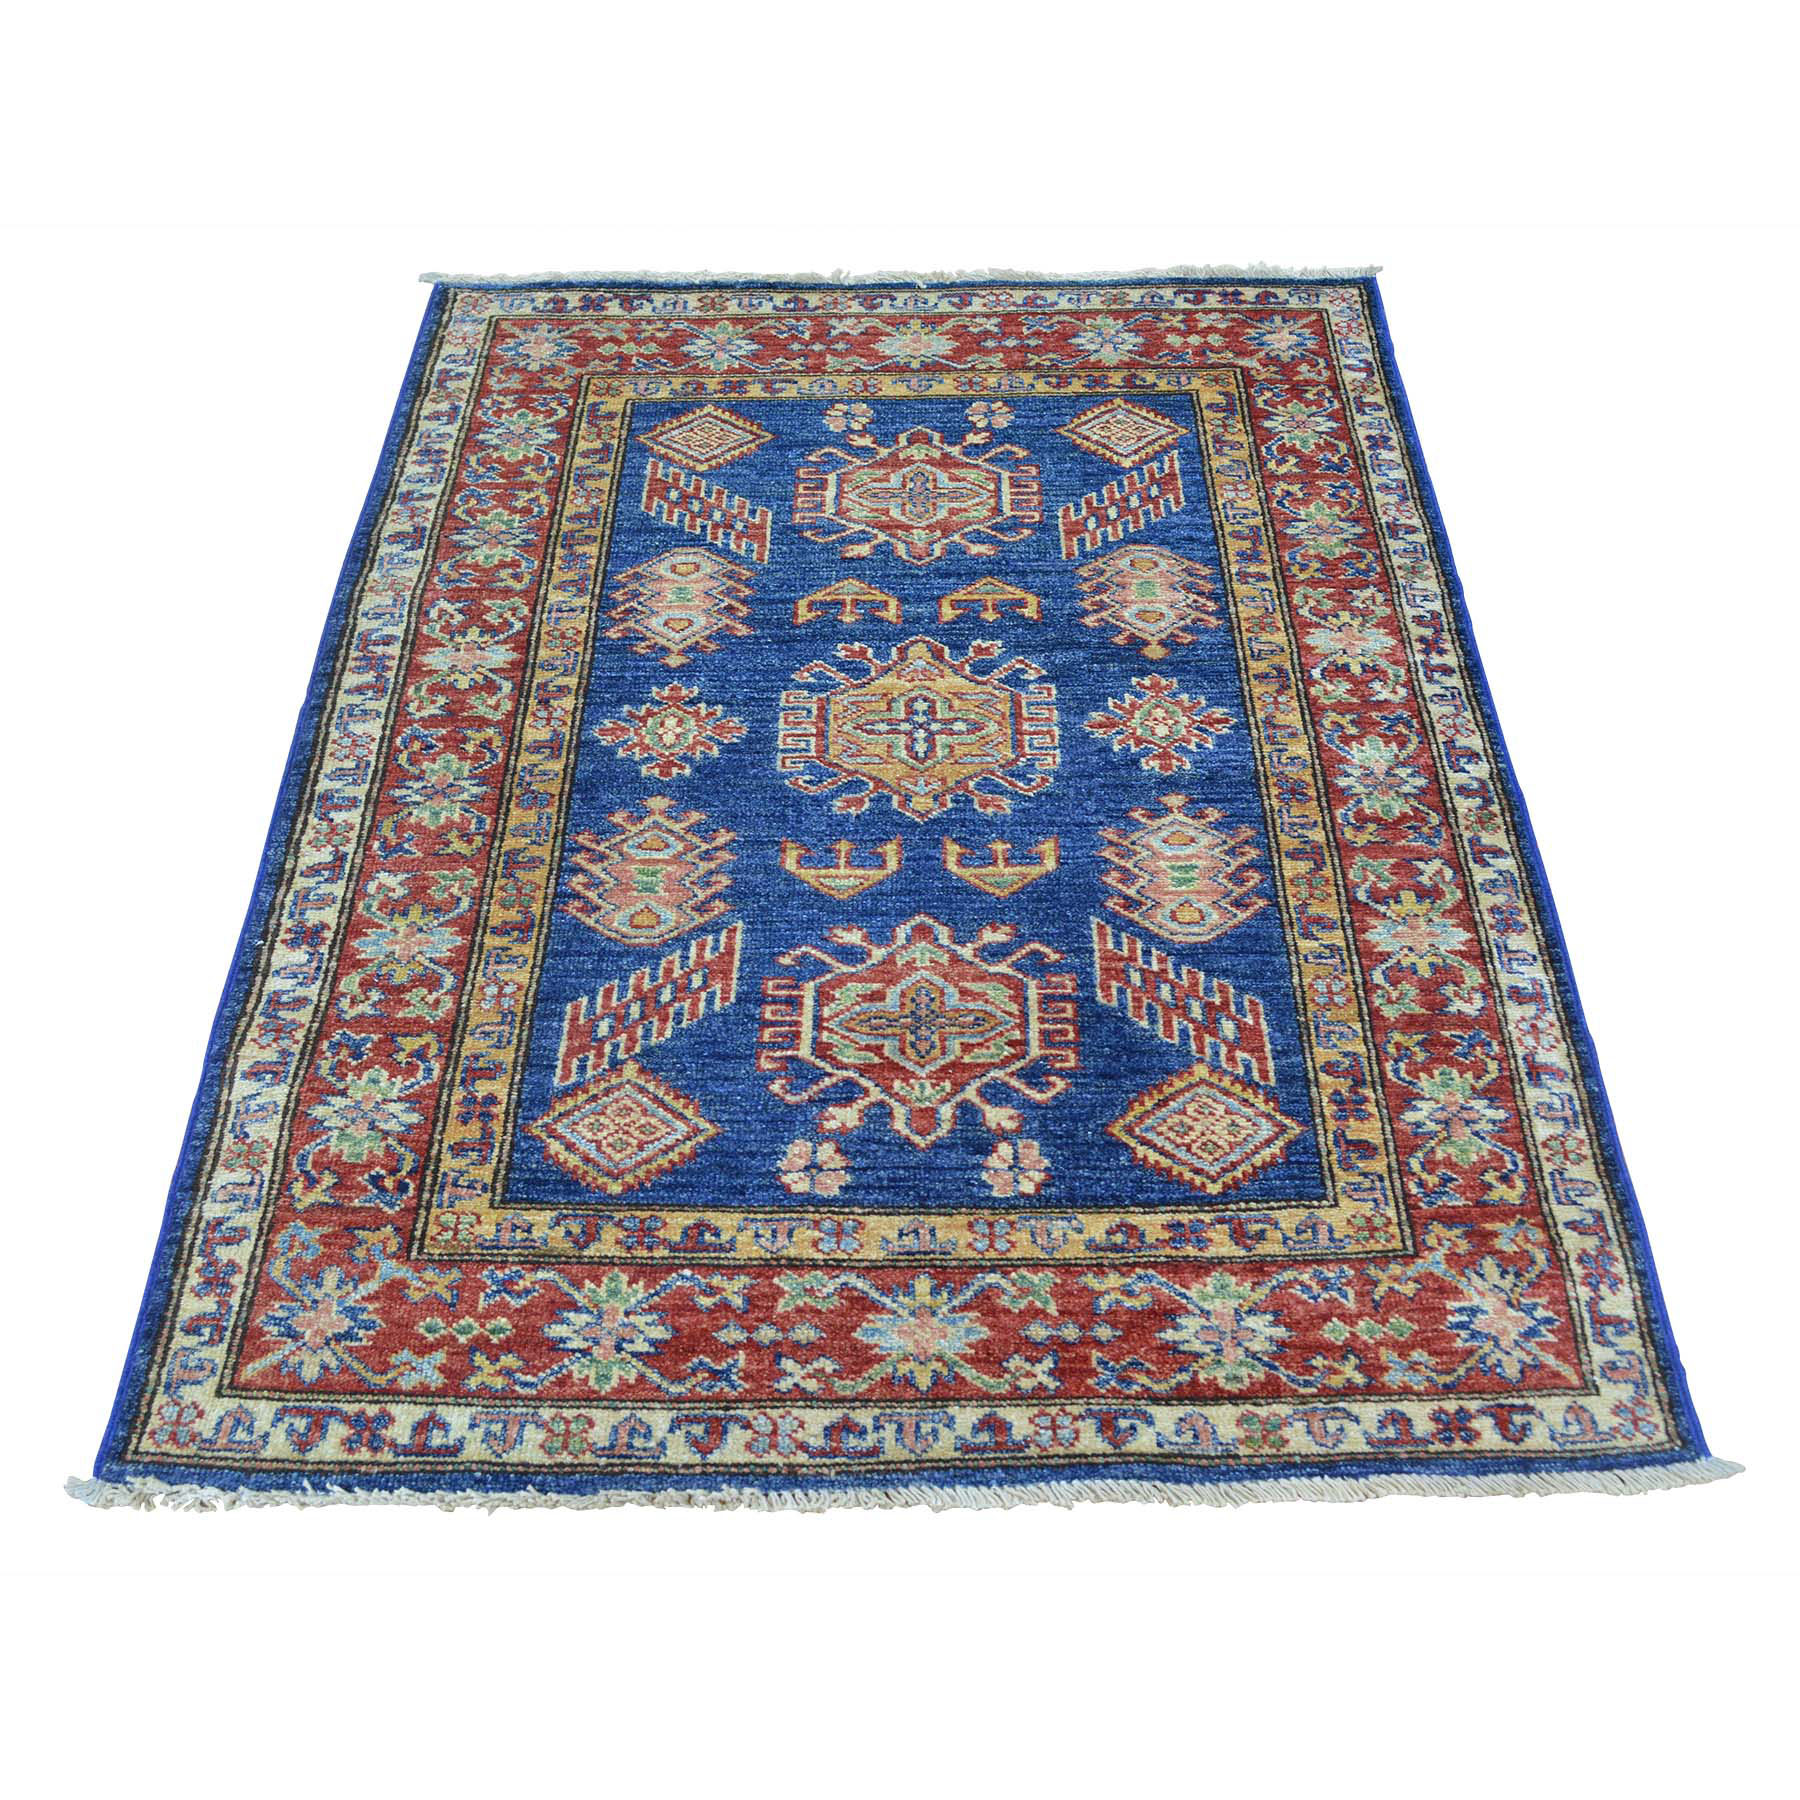 3-x4- Denim Blue Tribal Design Hand Knotted Pure Wool Super Kazak Rug